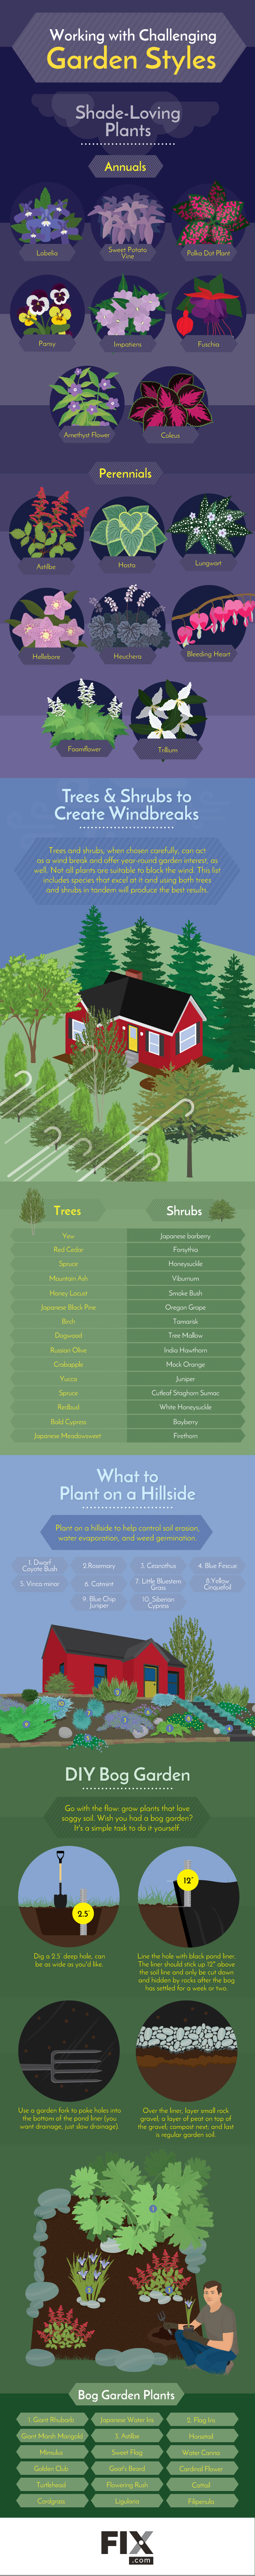 A Guide To Gardening Styles - Infographic